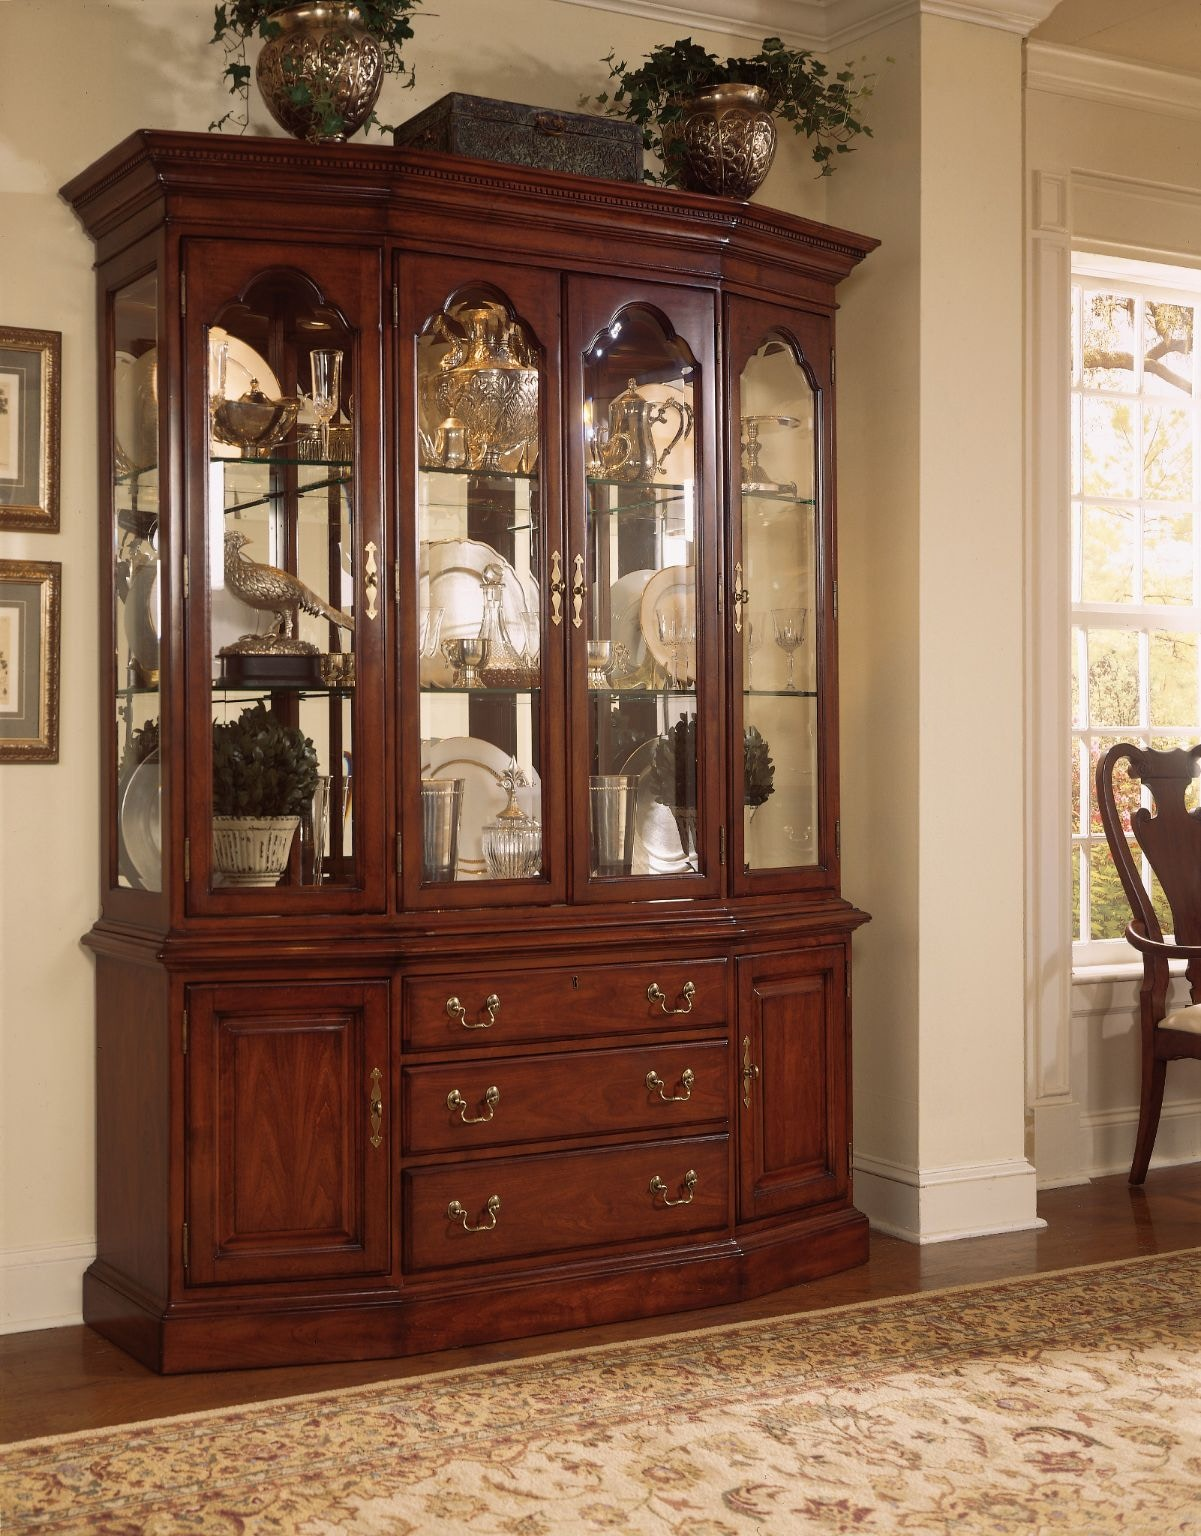 american drew furniture cherry grove dining room set american drew furniture cherry grove dining room set